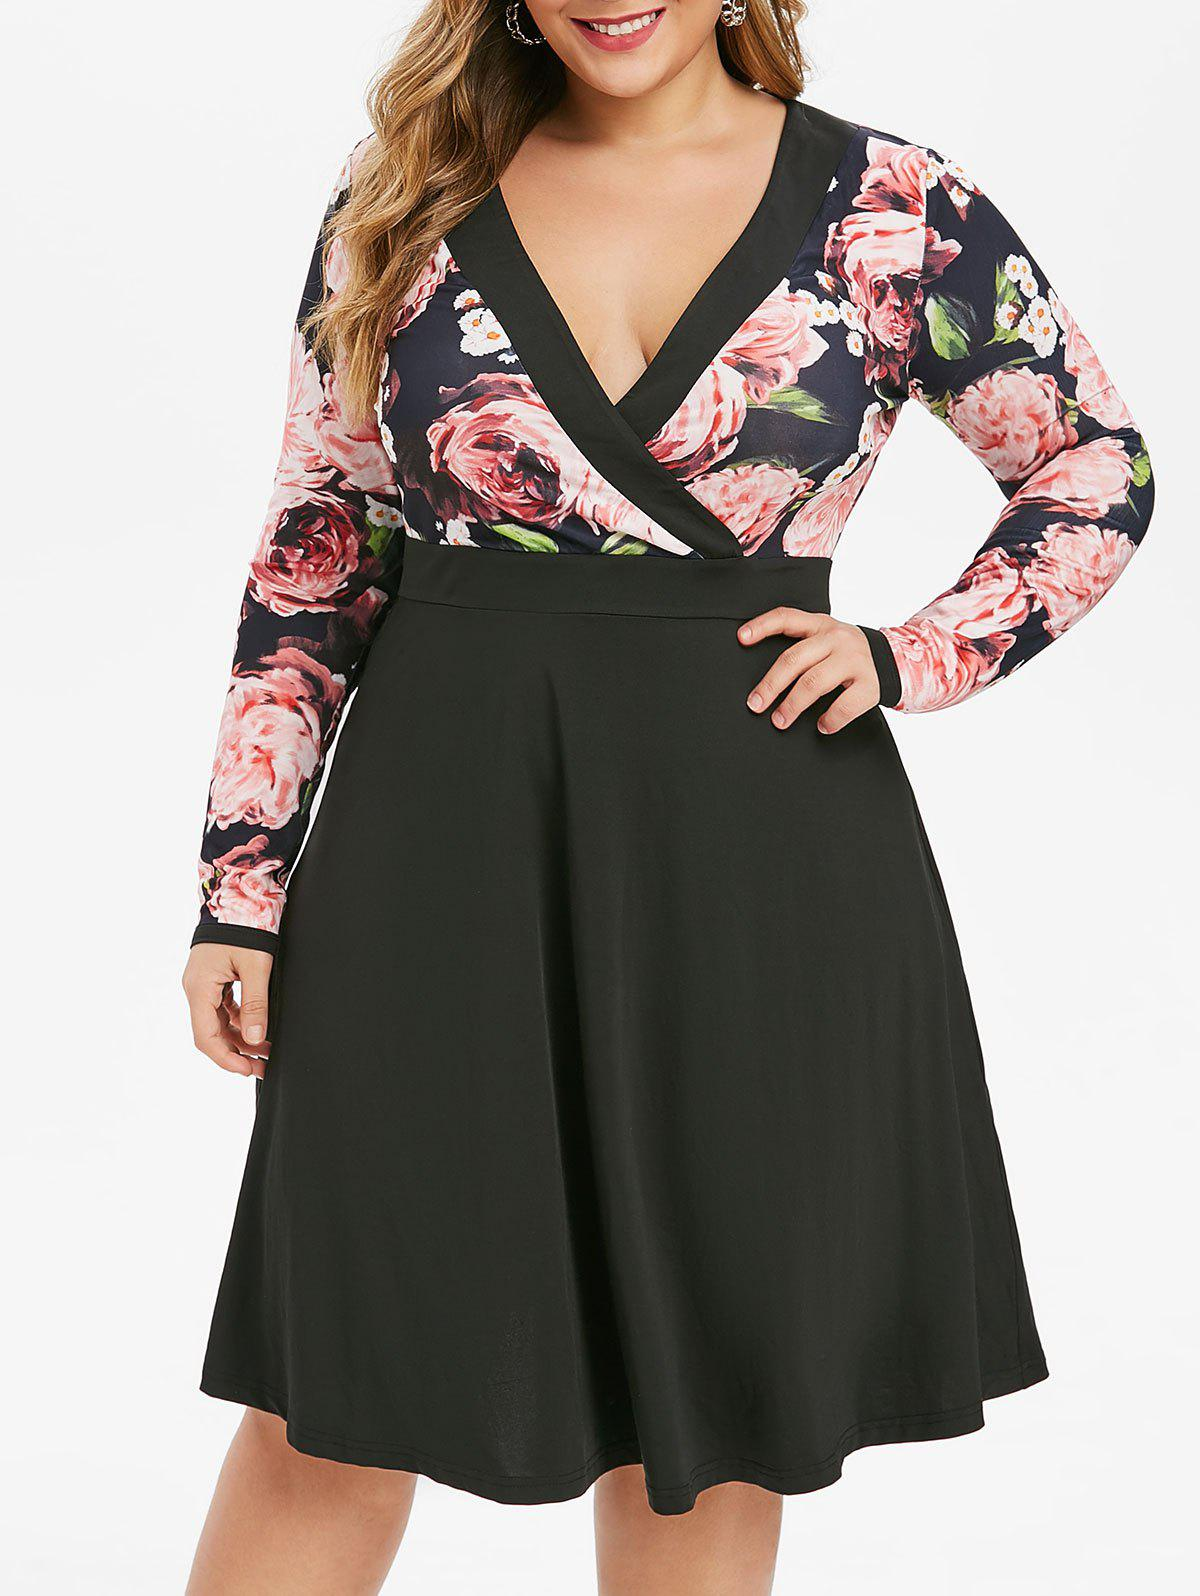 Plus Size Plunging Neck Floral Print Surplice Dress